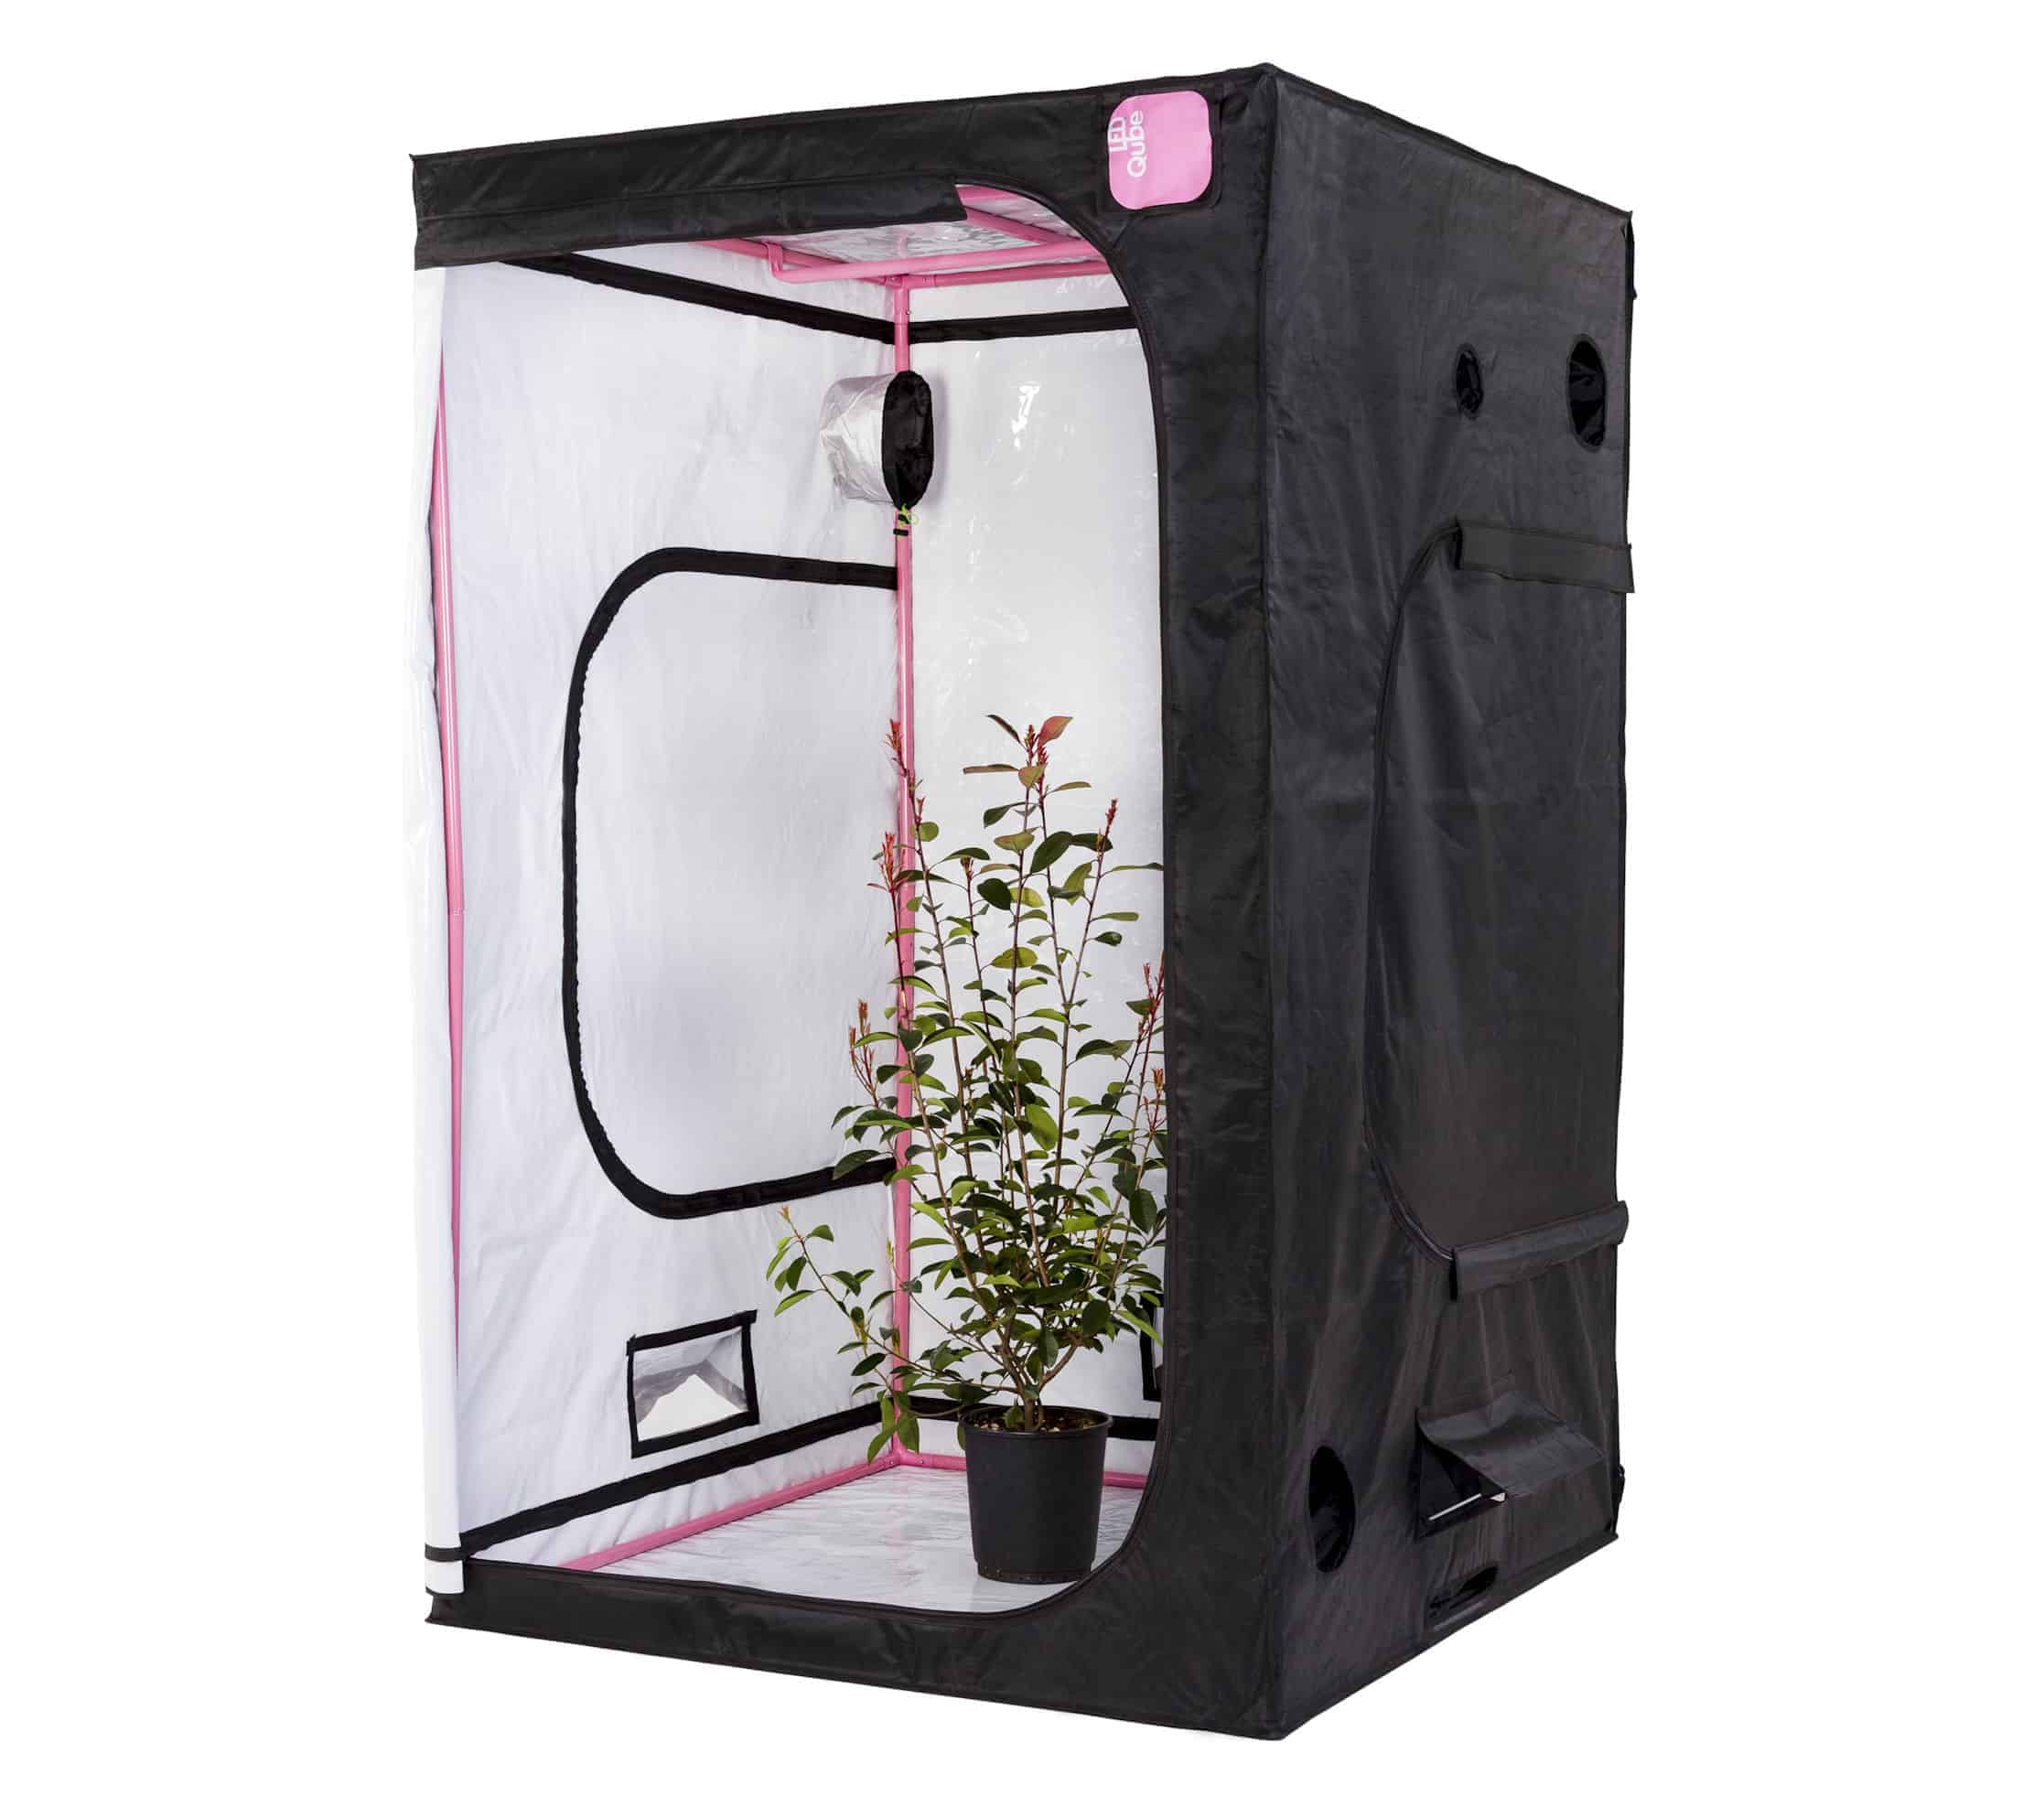 LED Qube by Green Qube grow tent